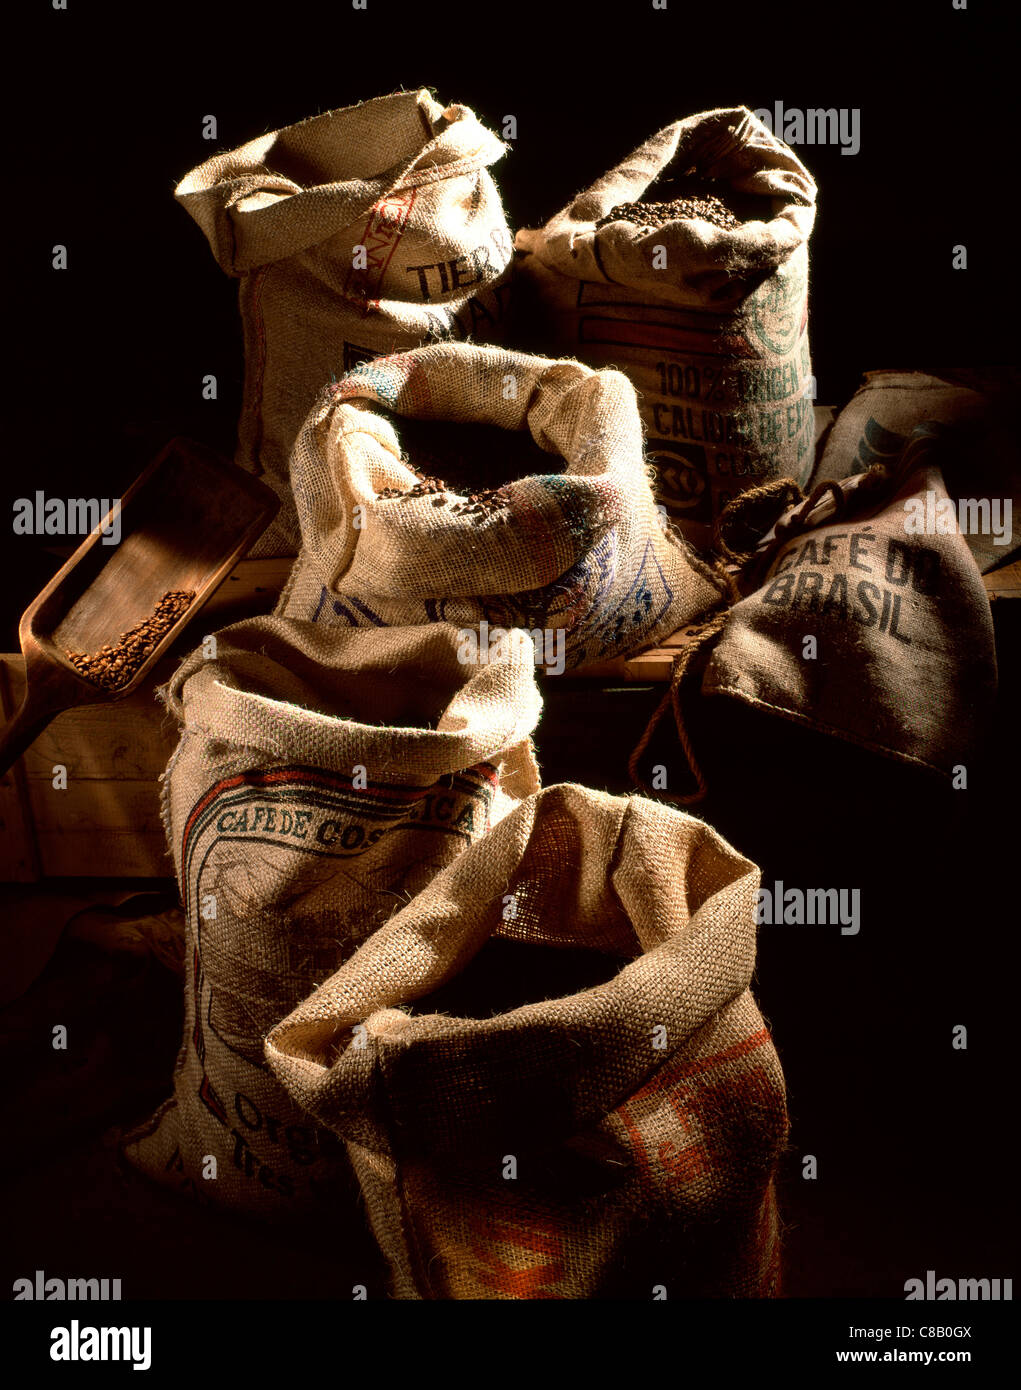 Sacks of coffee beans - Stock Image